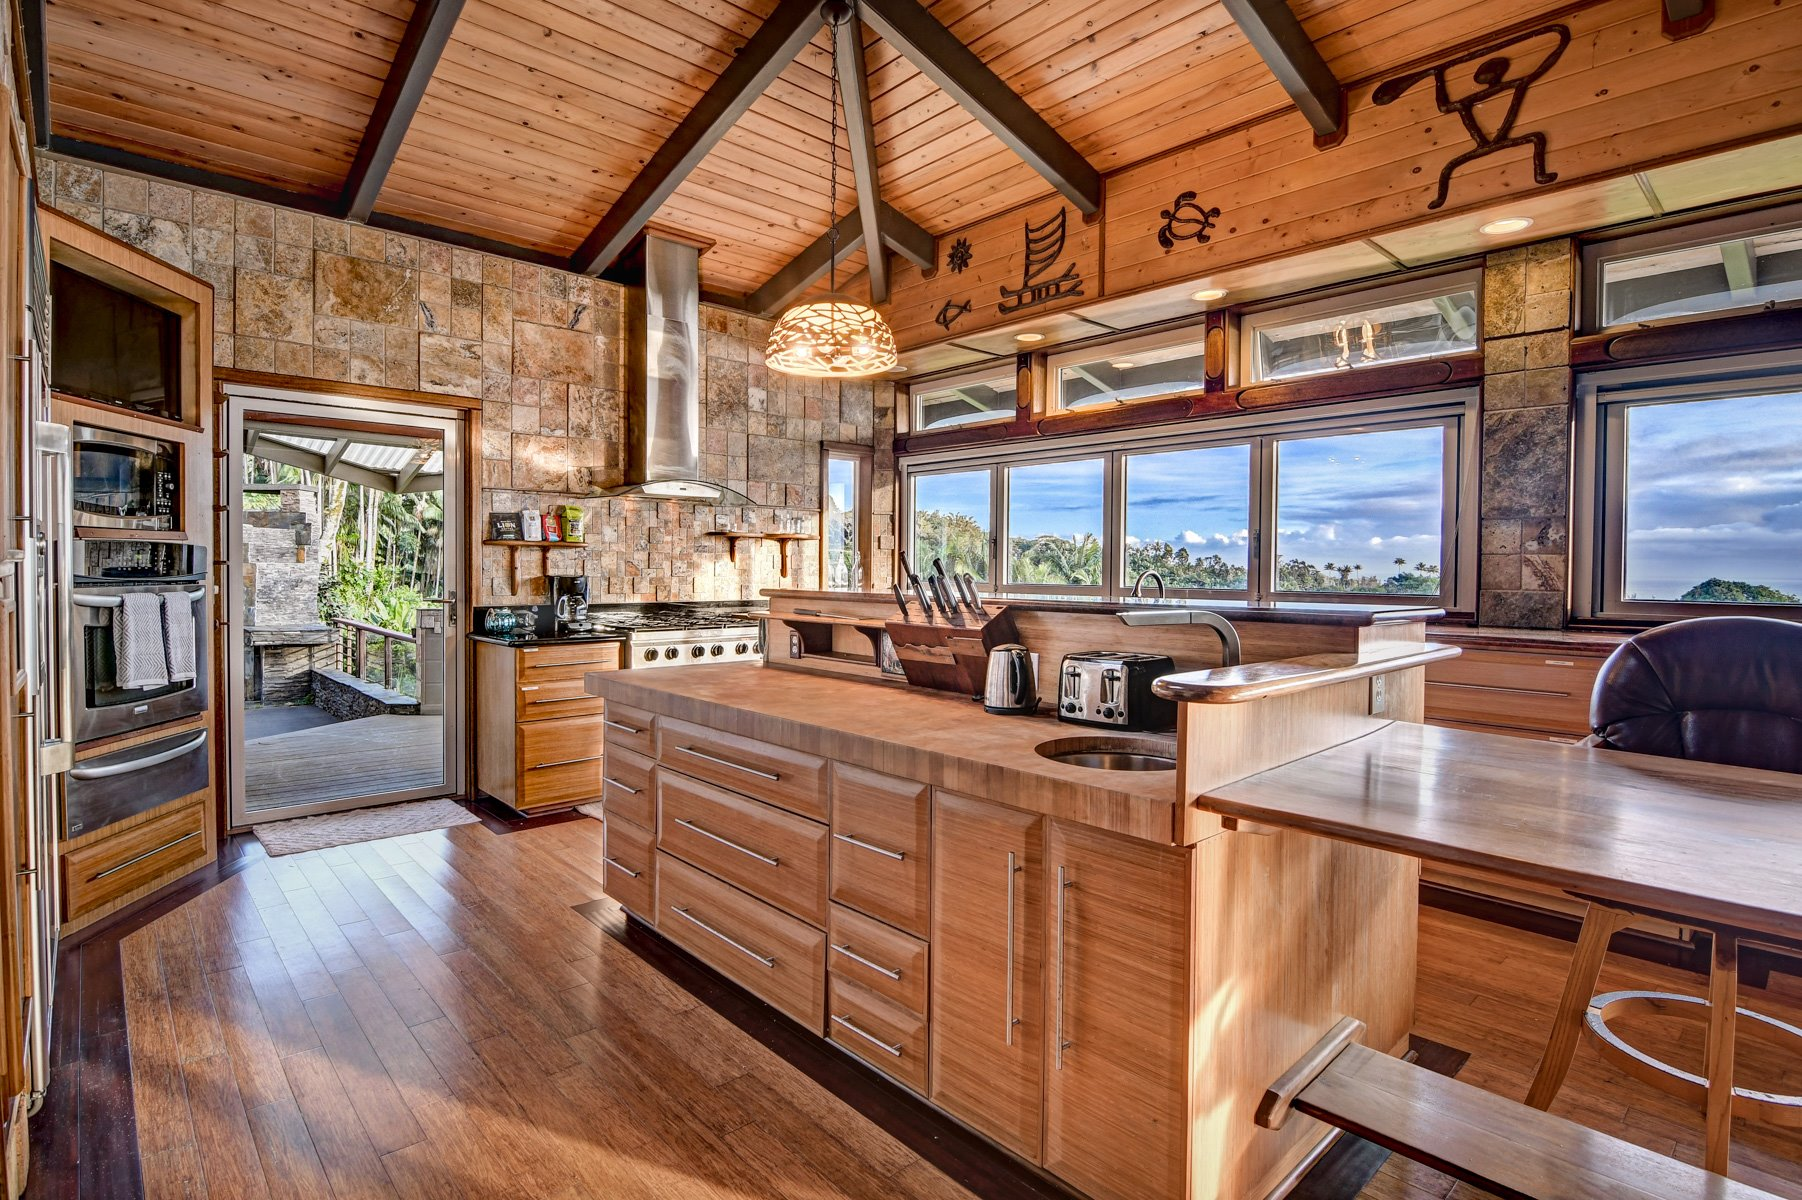 Kitchen includes a custom ordered 6' under-mount sink with drainboard, sliding collander, and sliding chopping block, 2-12' banks of Nana Windows that open the kitchen to the breathtaking bay and ocean views